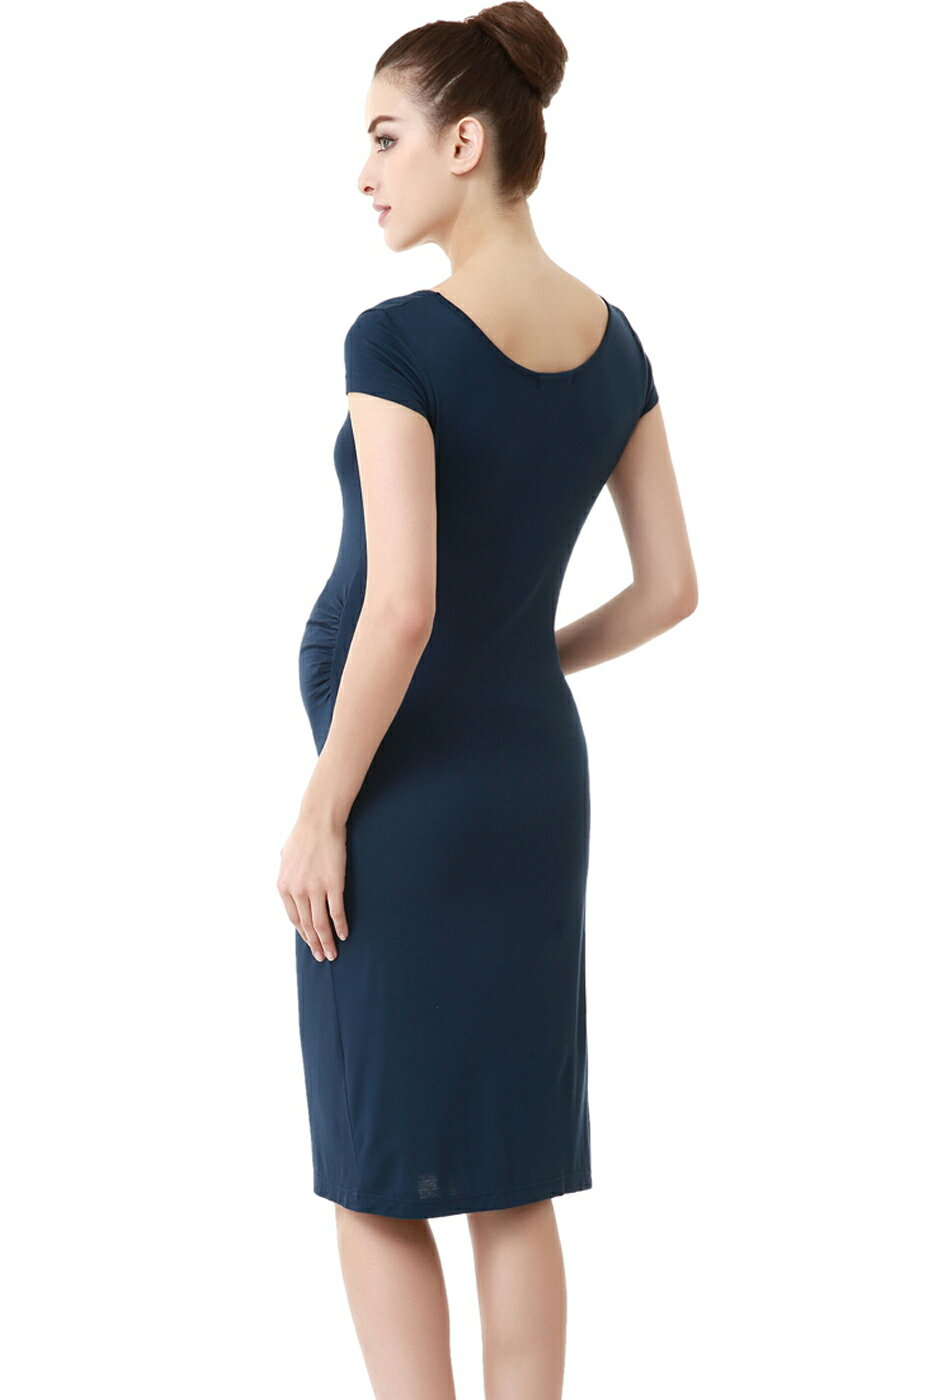 8a8dd4f771 Luxury Lane  Momo Maternity Navy Fitted Tee Dress